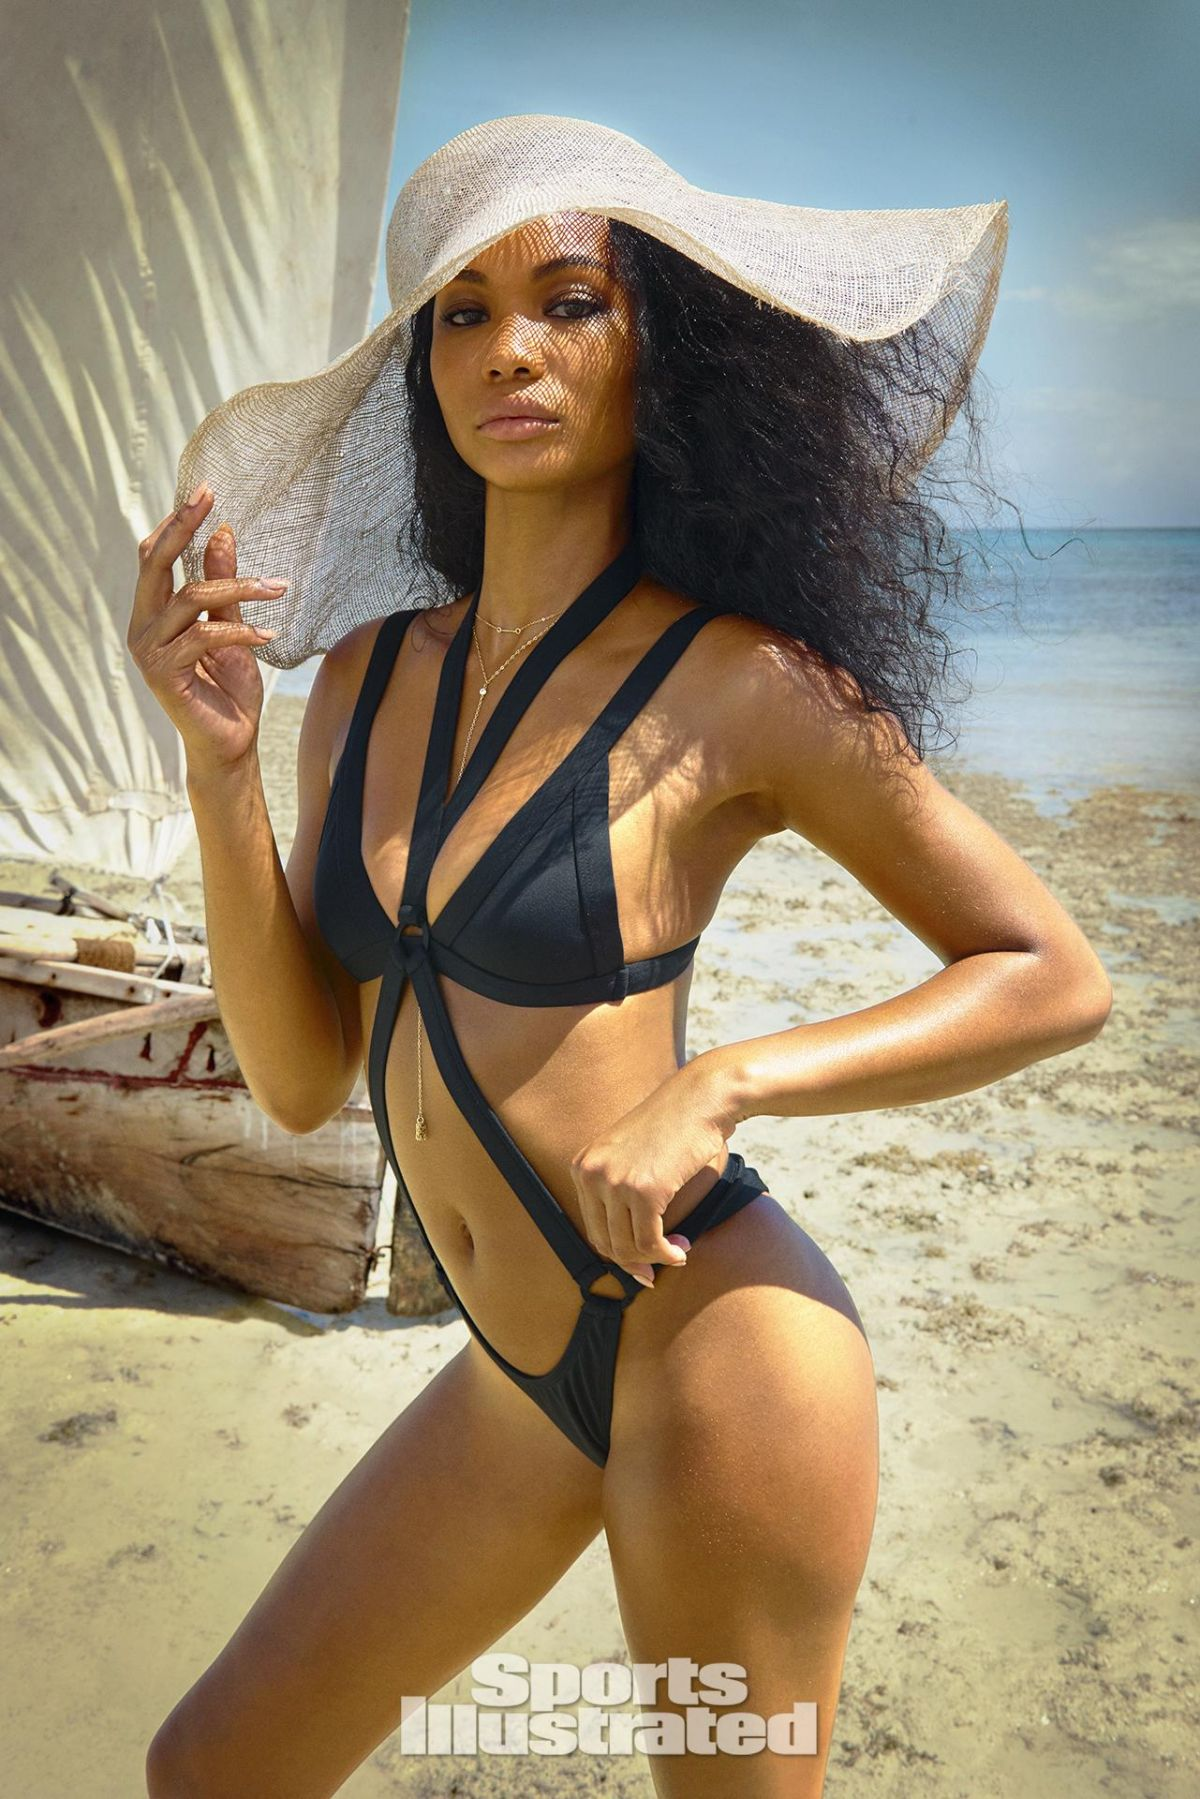 CHANEL IMAN in Sports Illustrated Swimsuit Issue 2016